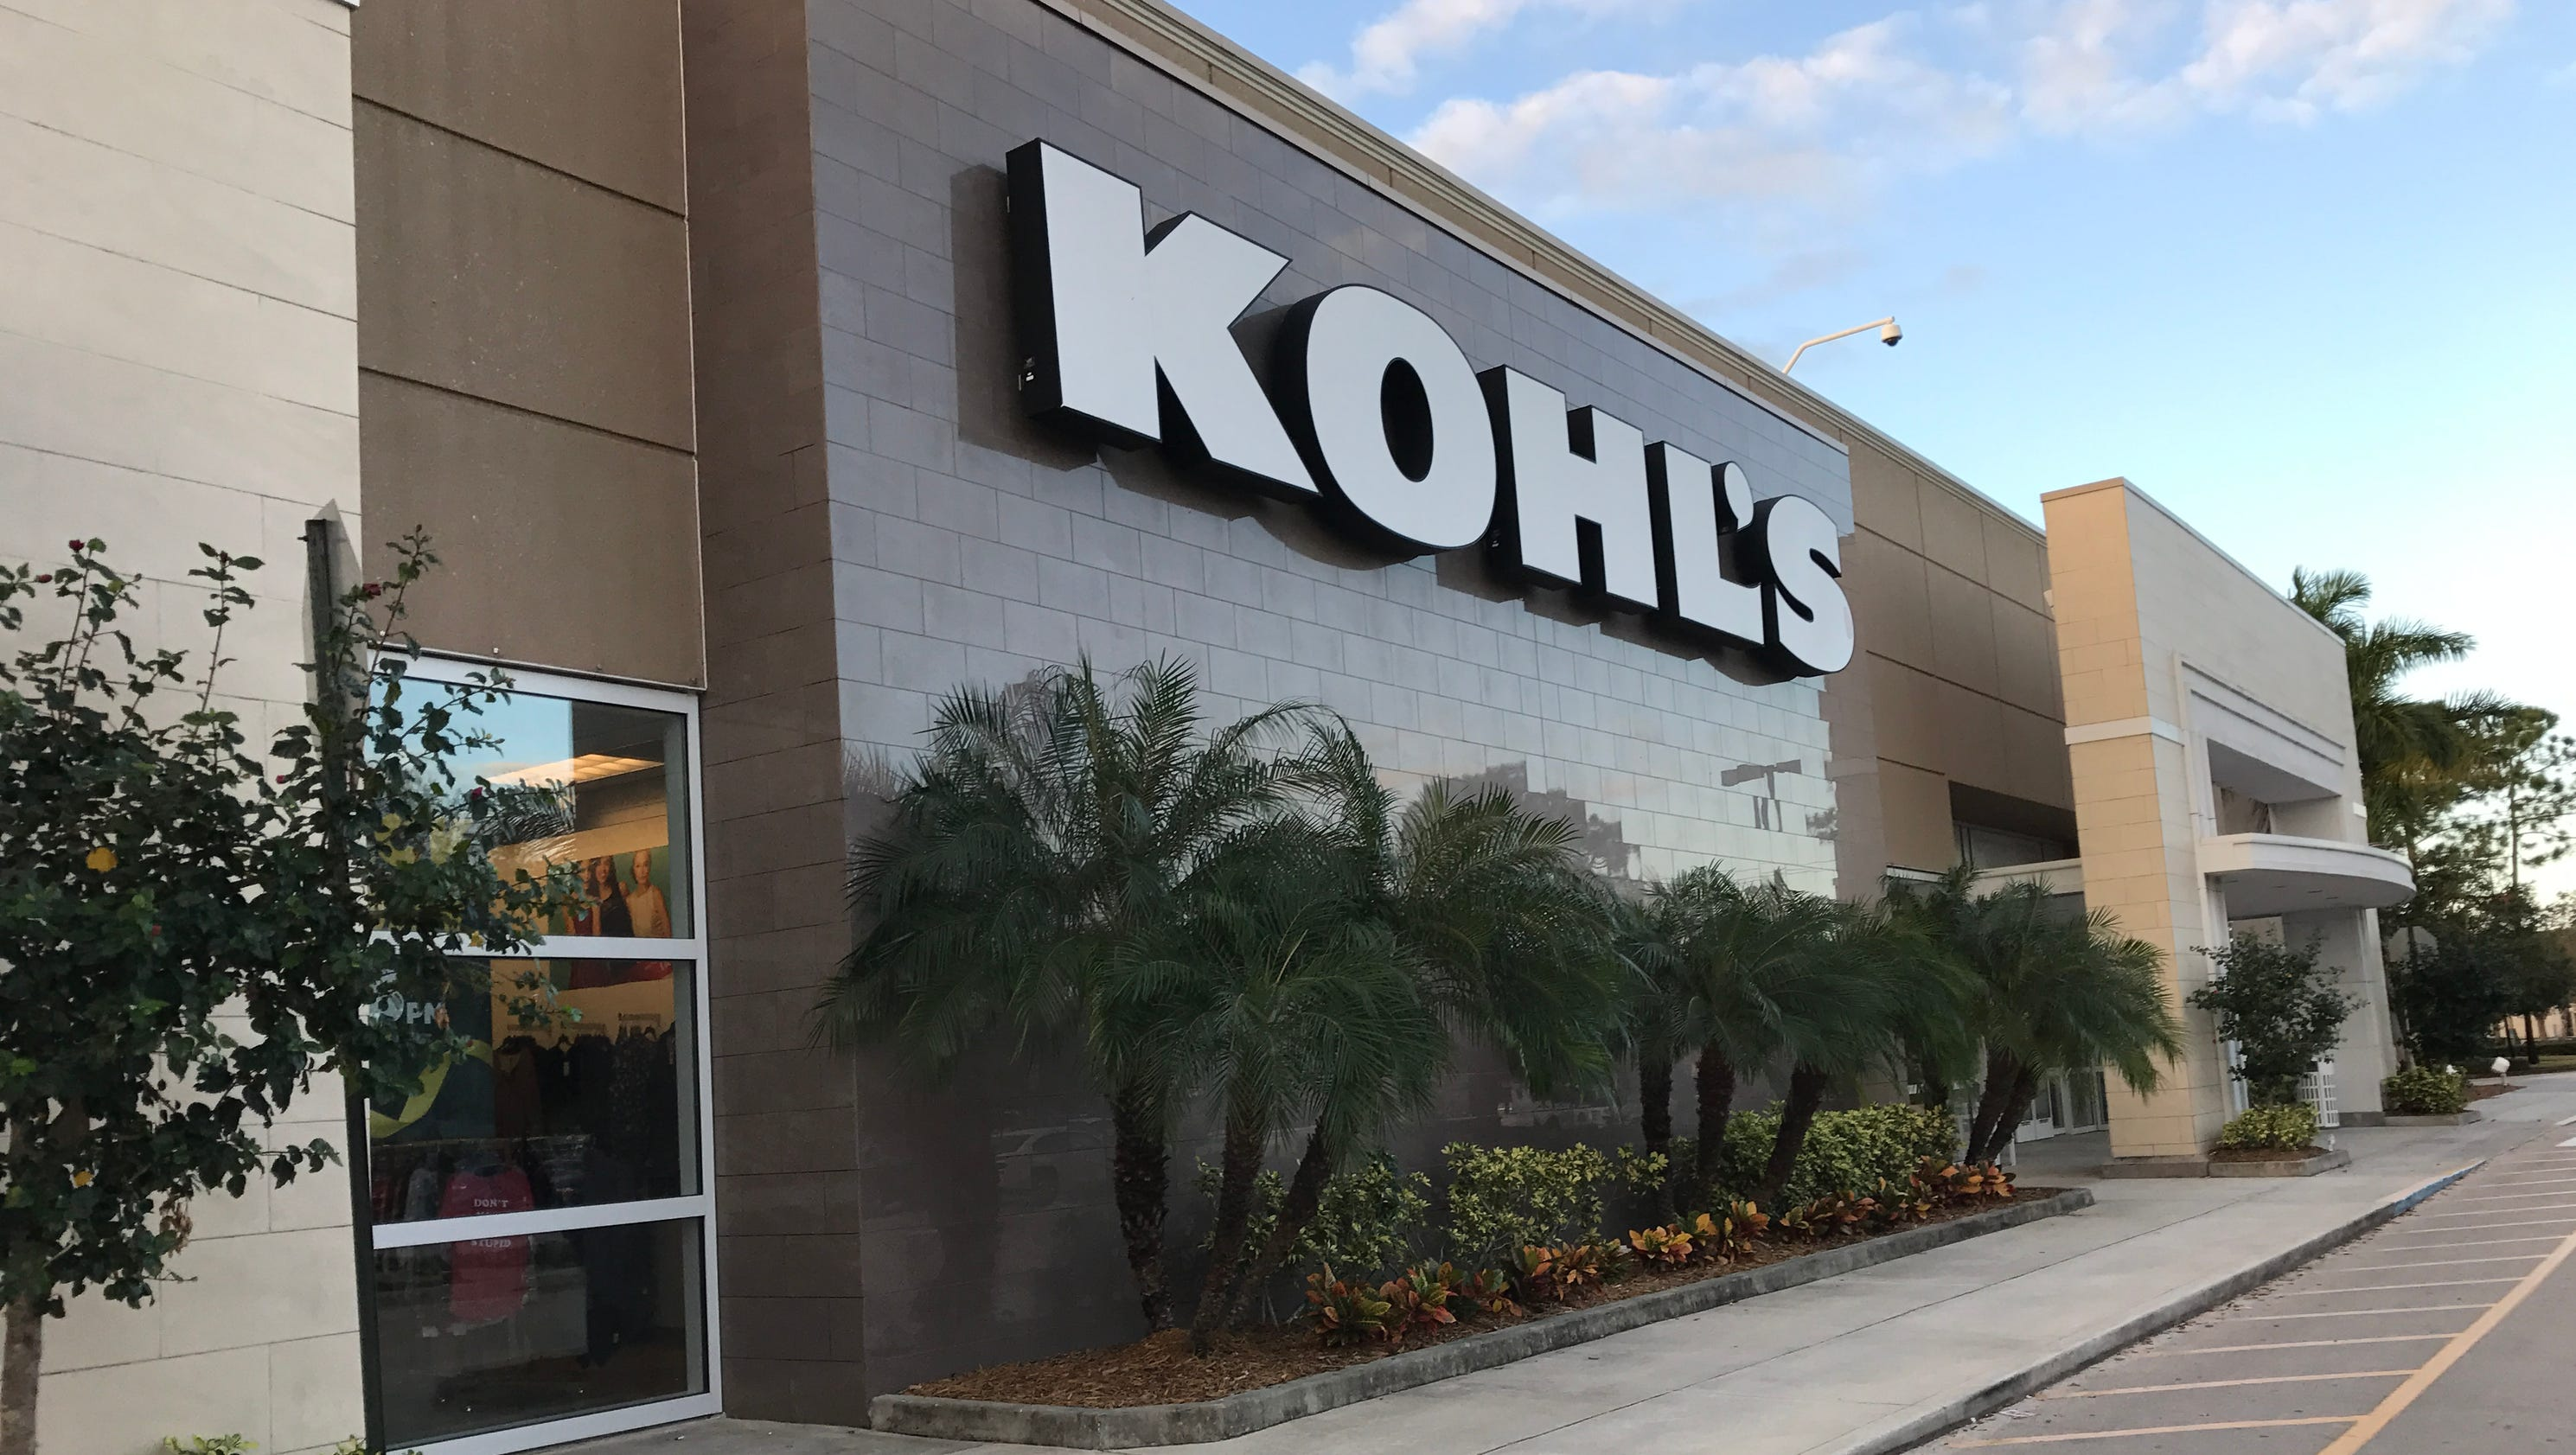 Kohl's hours and Kohl's locations along with phone number and map with driving directions/5(19).